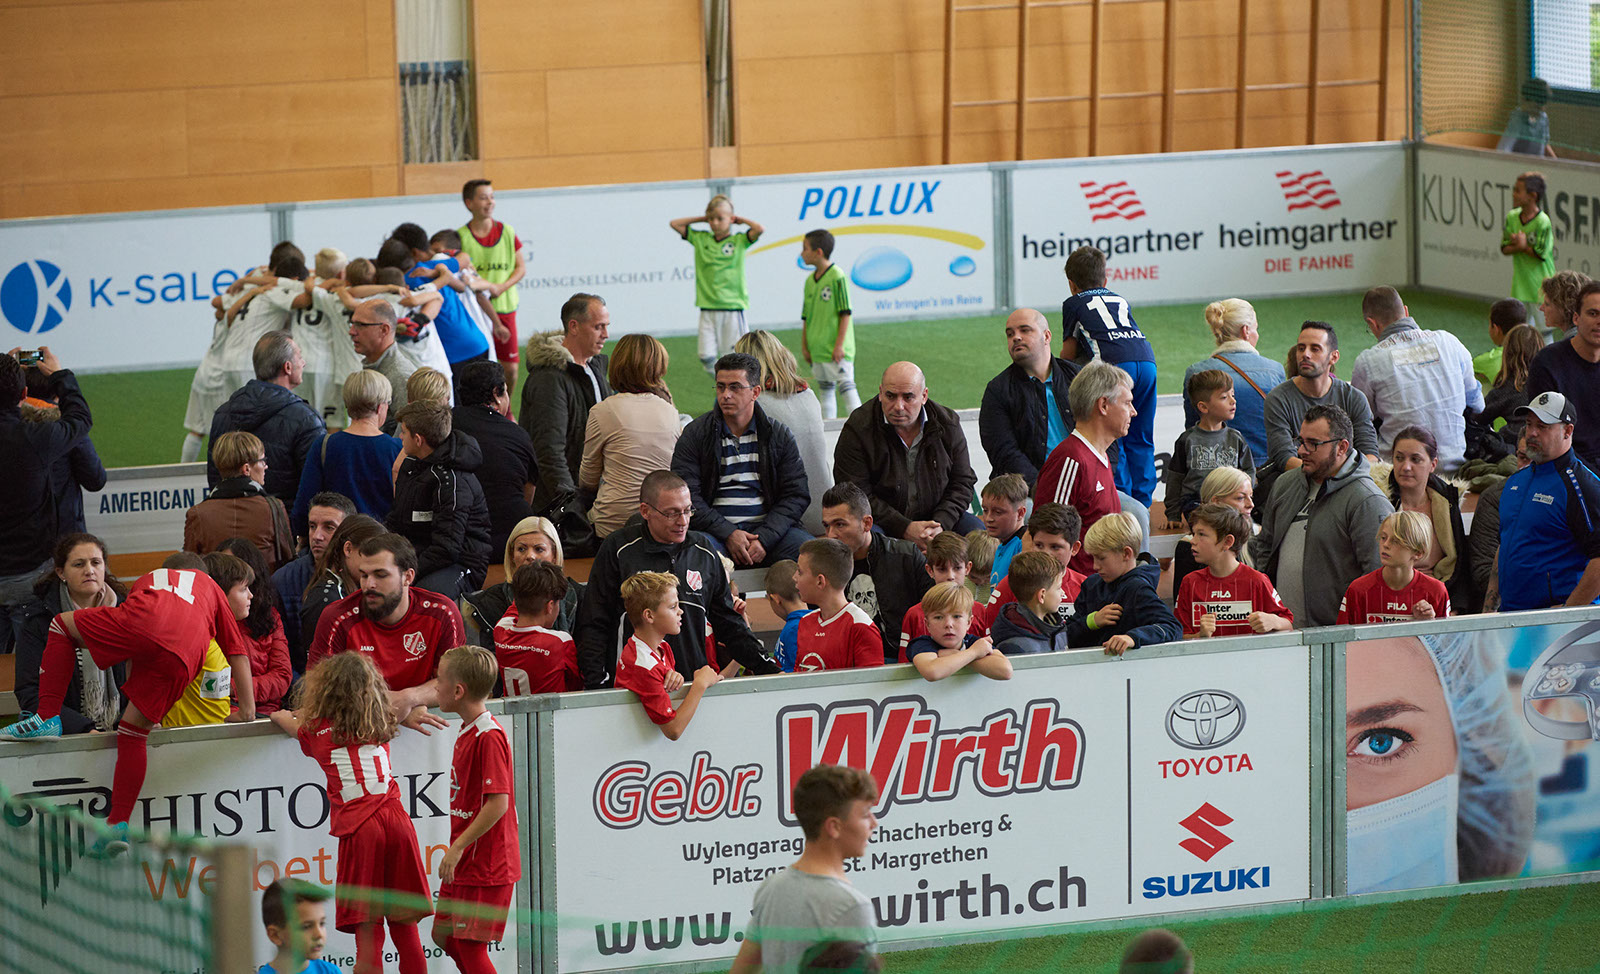 Bodensee-Cup_20171112_122834.jpg